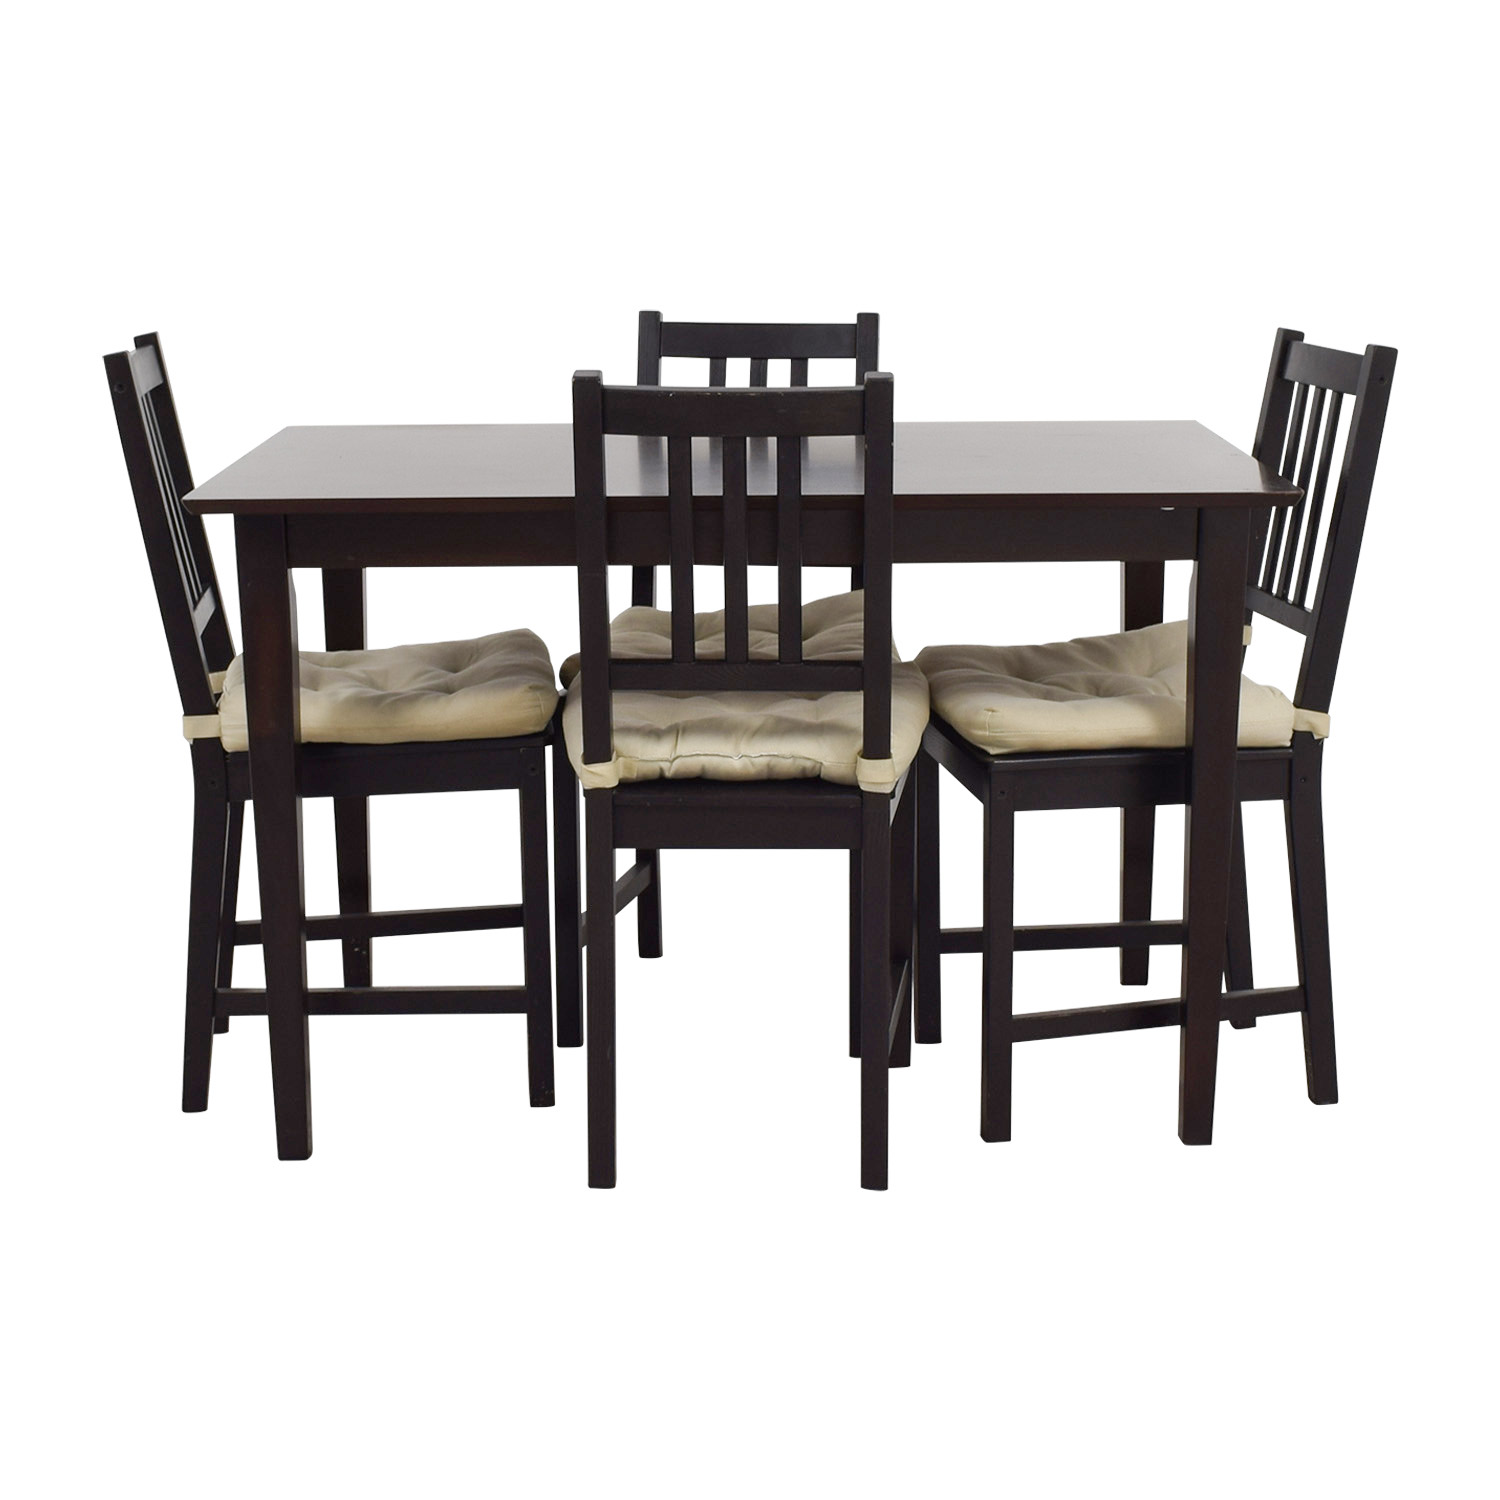 Dining Room Furniture Sets Ikea: Buy Ikea Dining: Used Furniture On Sale